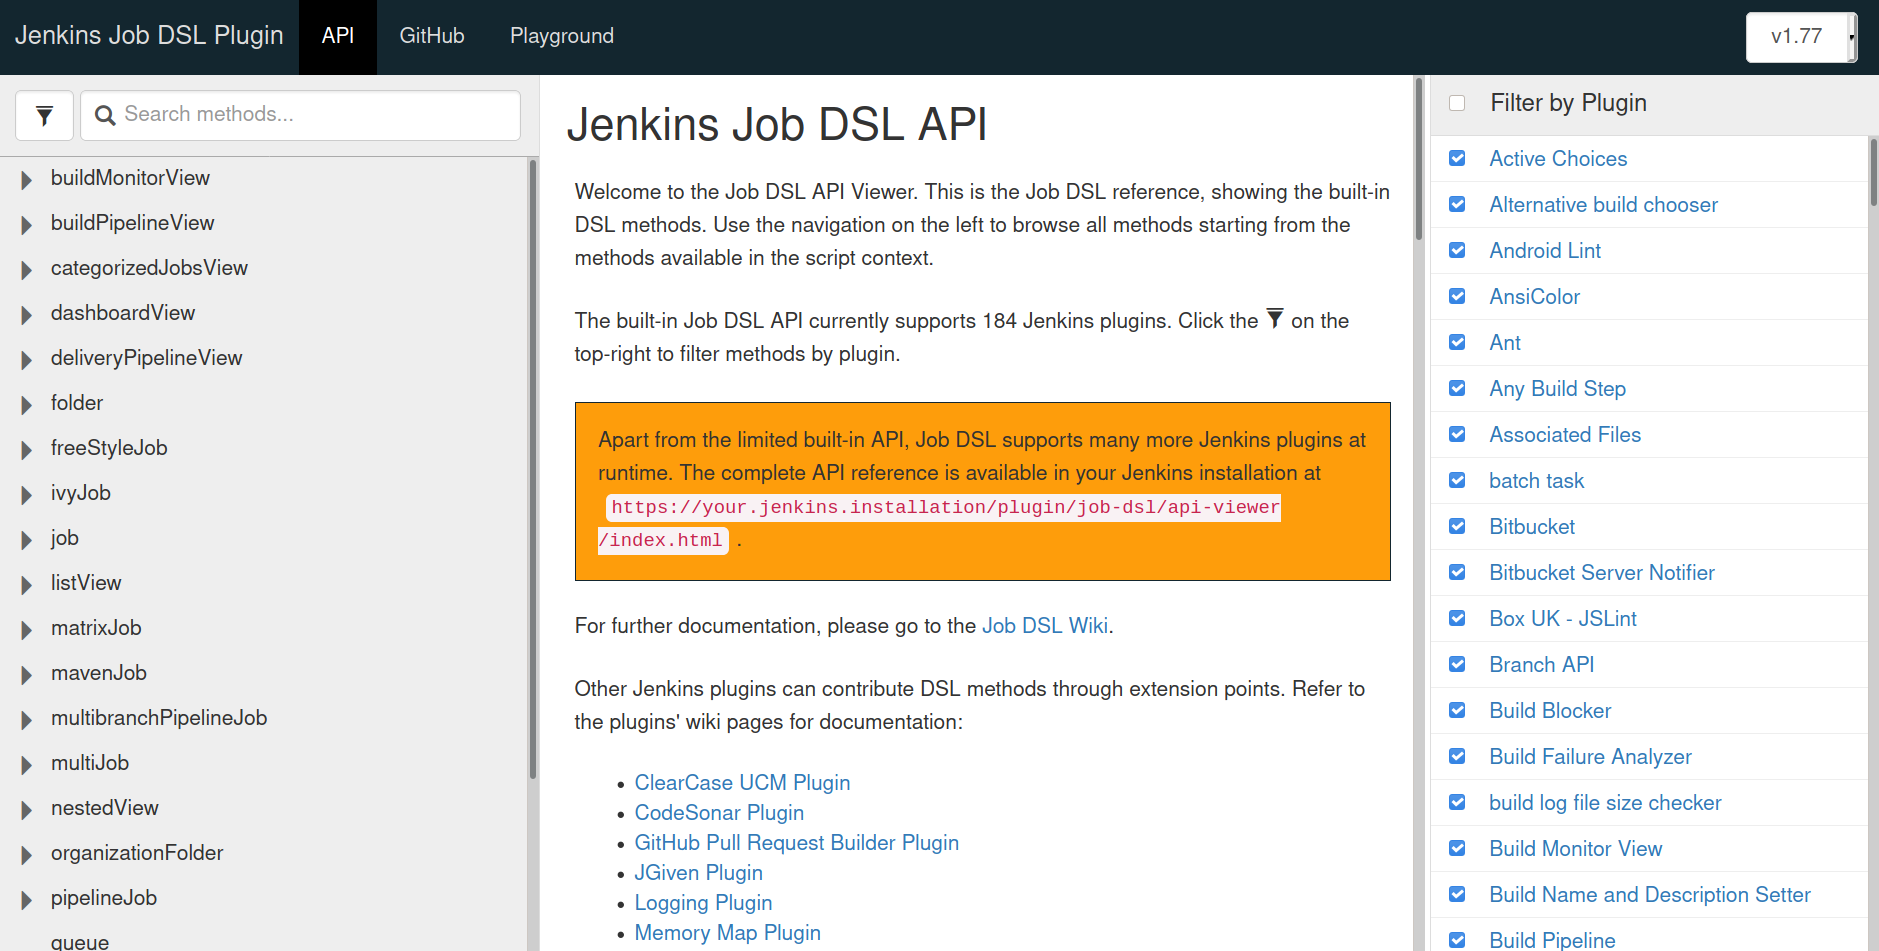 Jenkins Job DSL API Reference web page